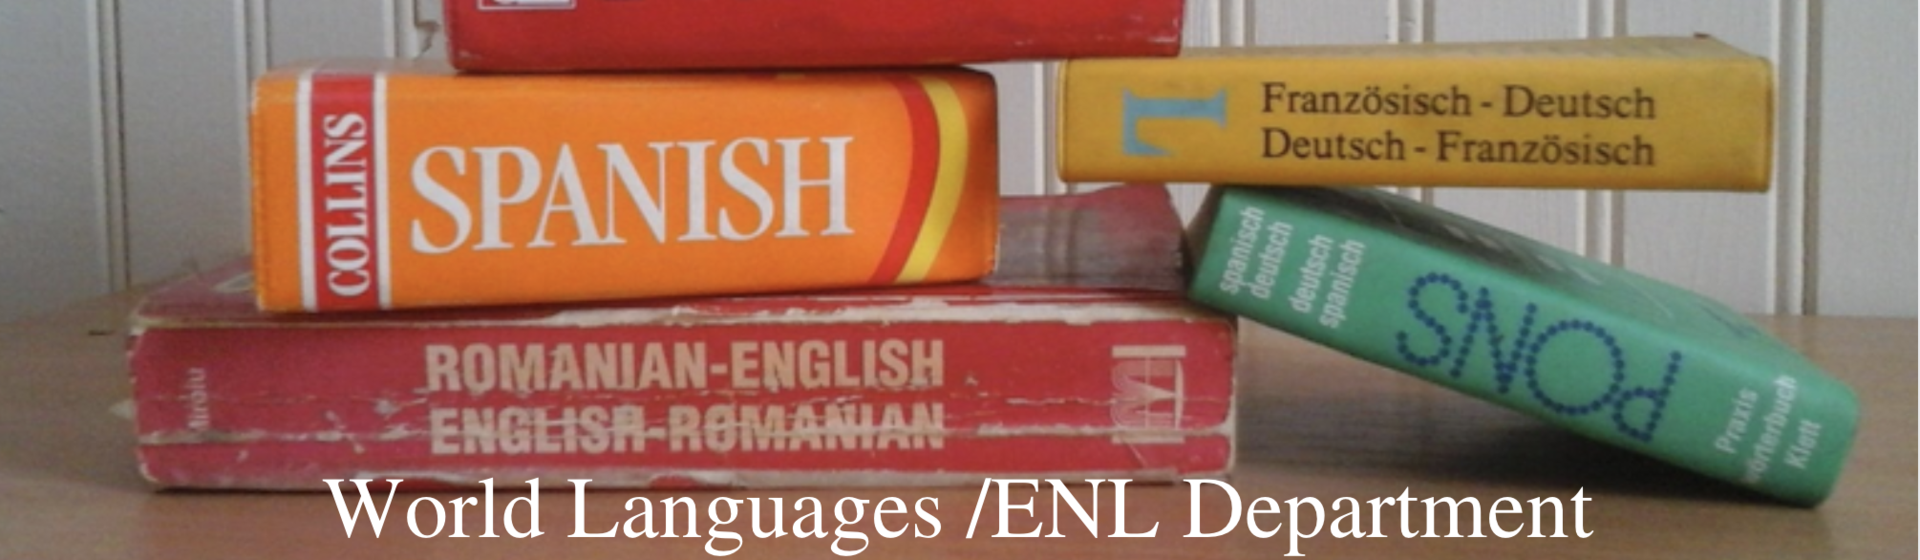 Foreign language dictionaries on a desk